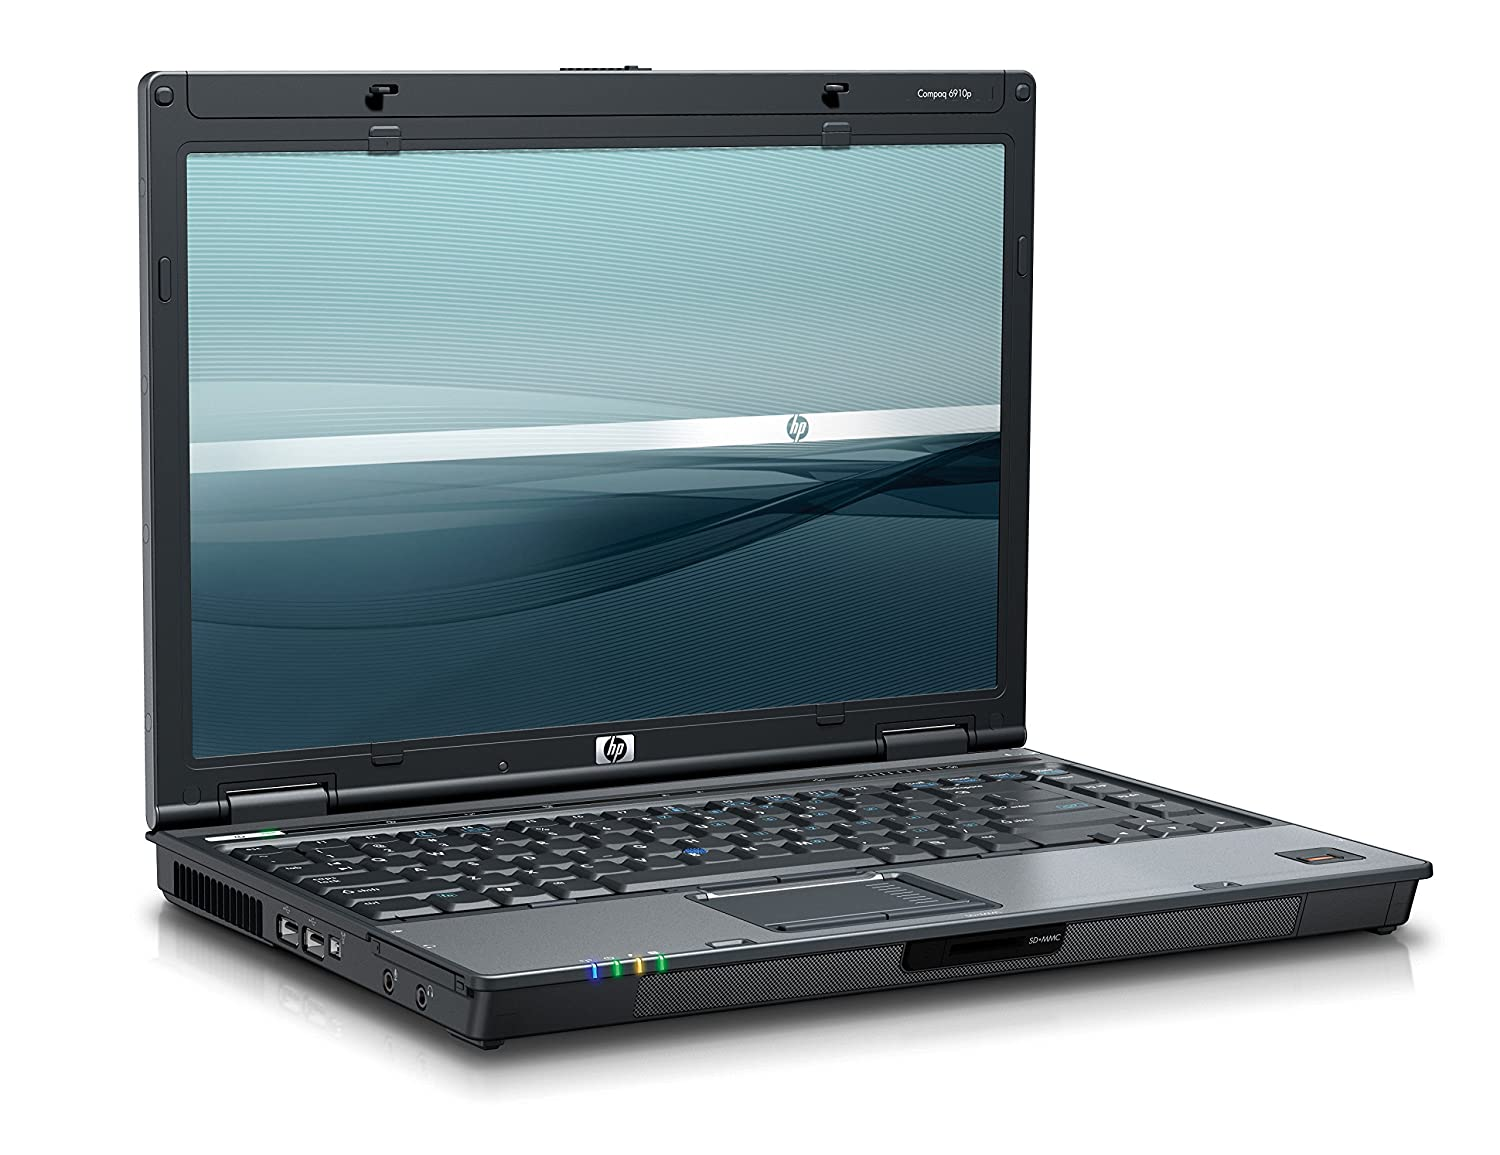 COMPAQ 6910P FINGERPRINT WINDOWS 7 64BIT DRIVER DOWNLOAD